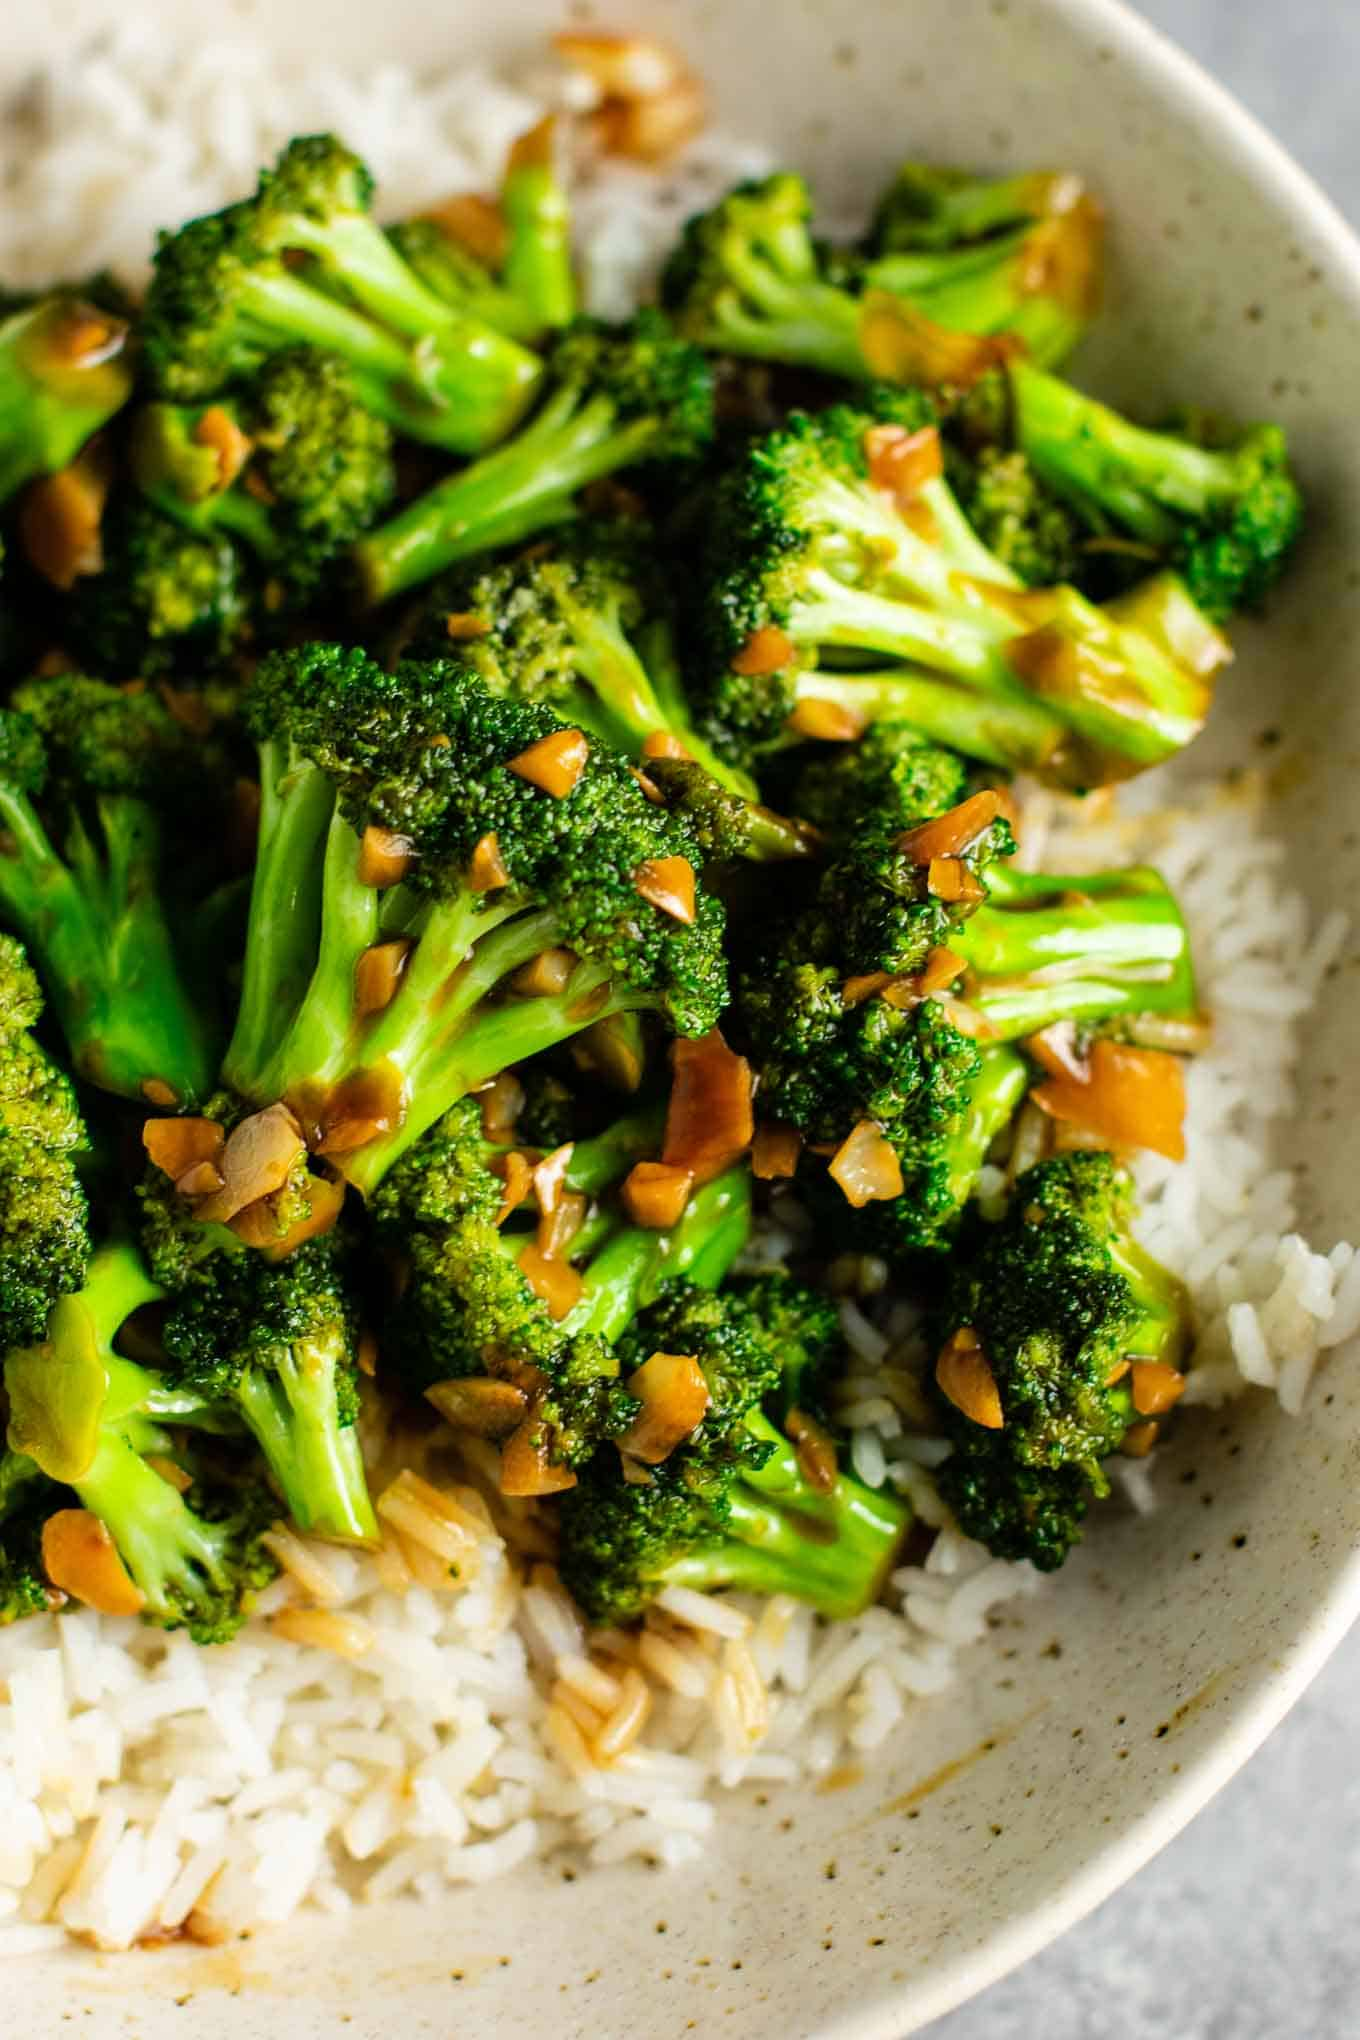 how to cook broccoli in a stir fry